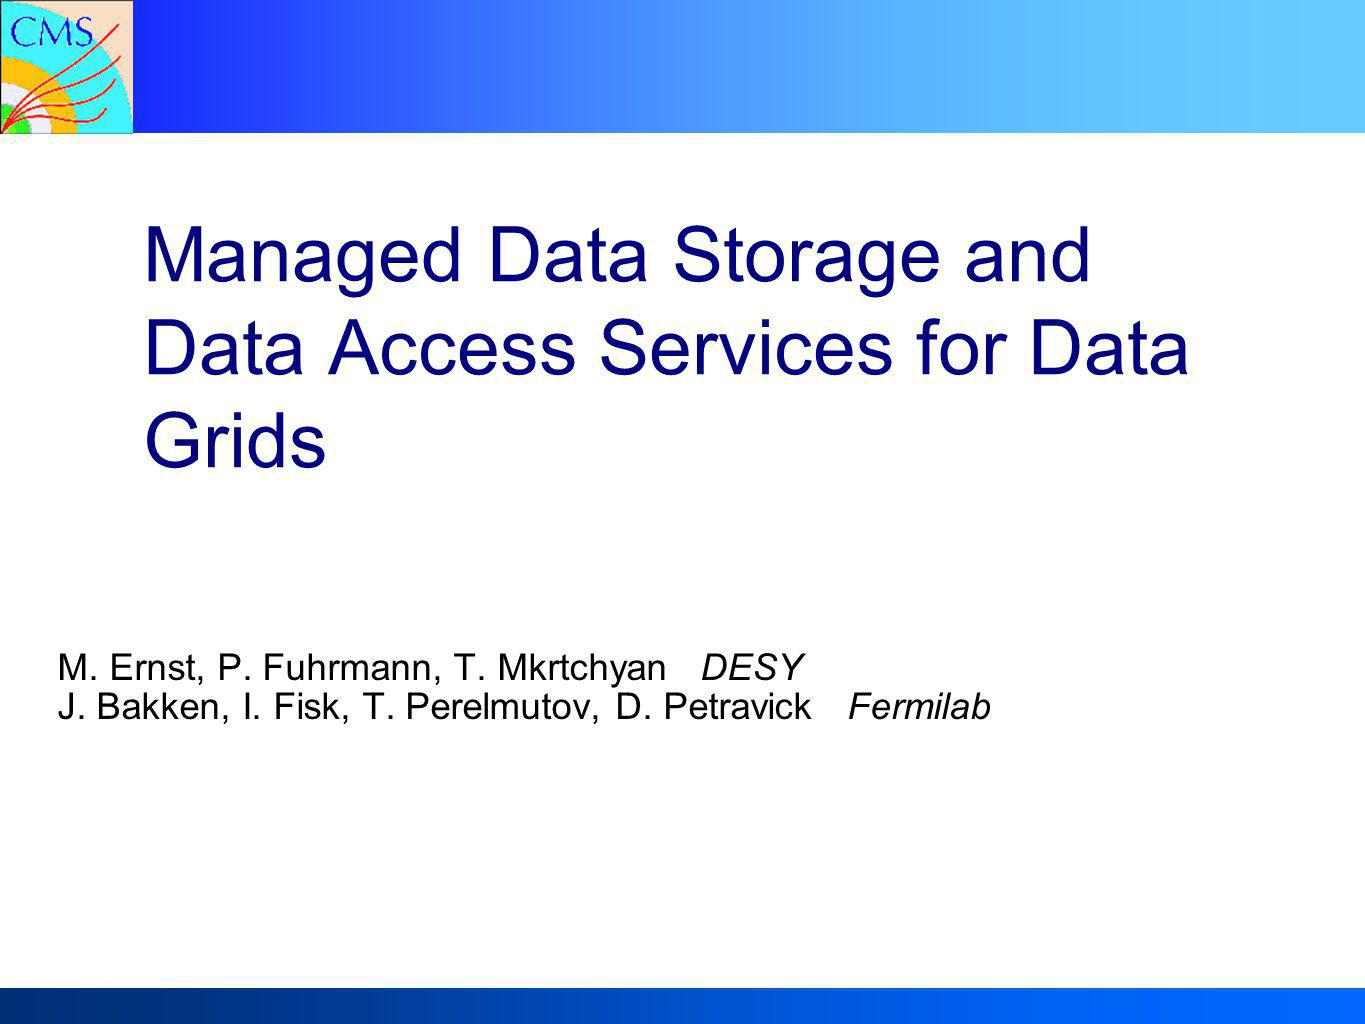 22 2Michael Ernst DESYManaged Data Storage - CHEP2004September 27, 2004 Data Grid Challenge … Global scientific communities, served by networks with bandwidths varying by orders of magnitude, need to perform computationally demanding analyses of geographically distributed datasets that will grow by at least 3 orders of magnitude over the next decade, from the 100 Terabyte to the 100 Petabyte scale. Provide a new degree of transparency in how data is handled and processed … as defined by the GriPhyN Project